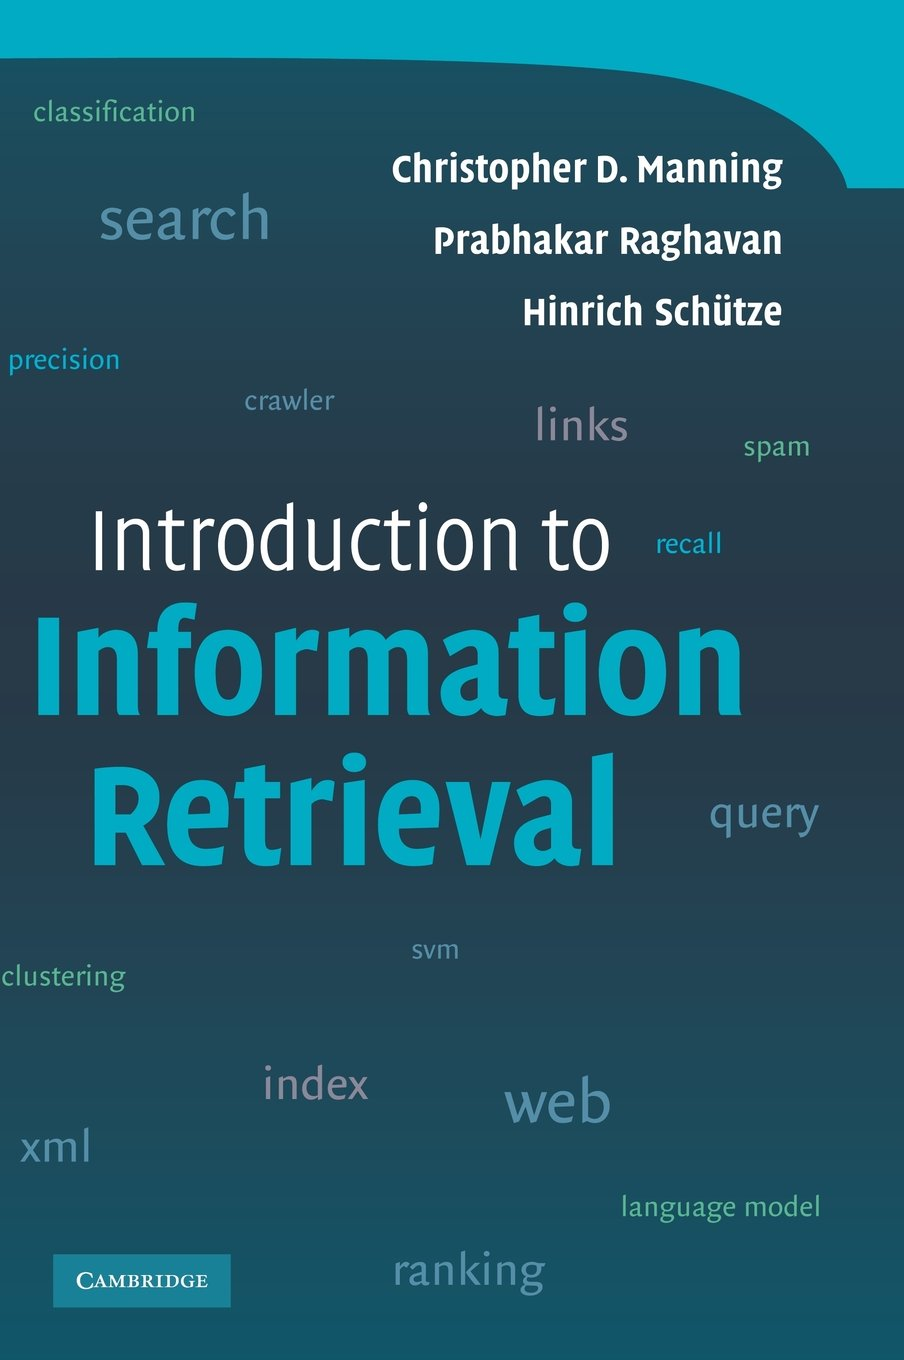 http://www.mediafire.com/view/mvy3k5ifofmpj55/An_INtroduction_to_Information_Retrieval.pdf